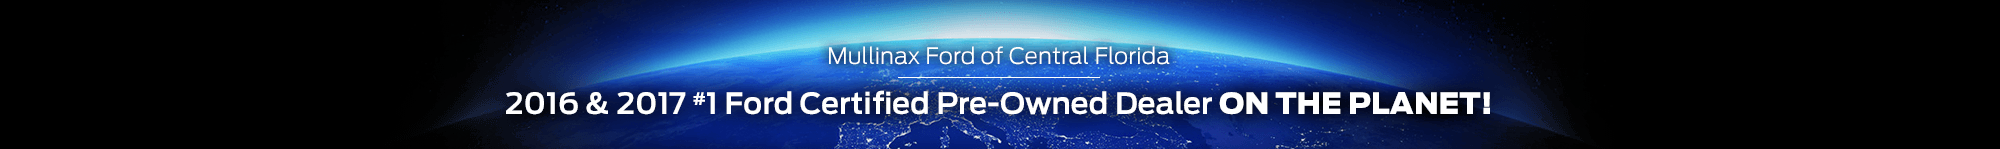 Ford certified pre-owned dealer